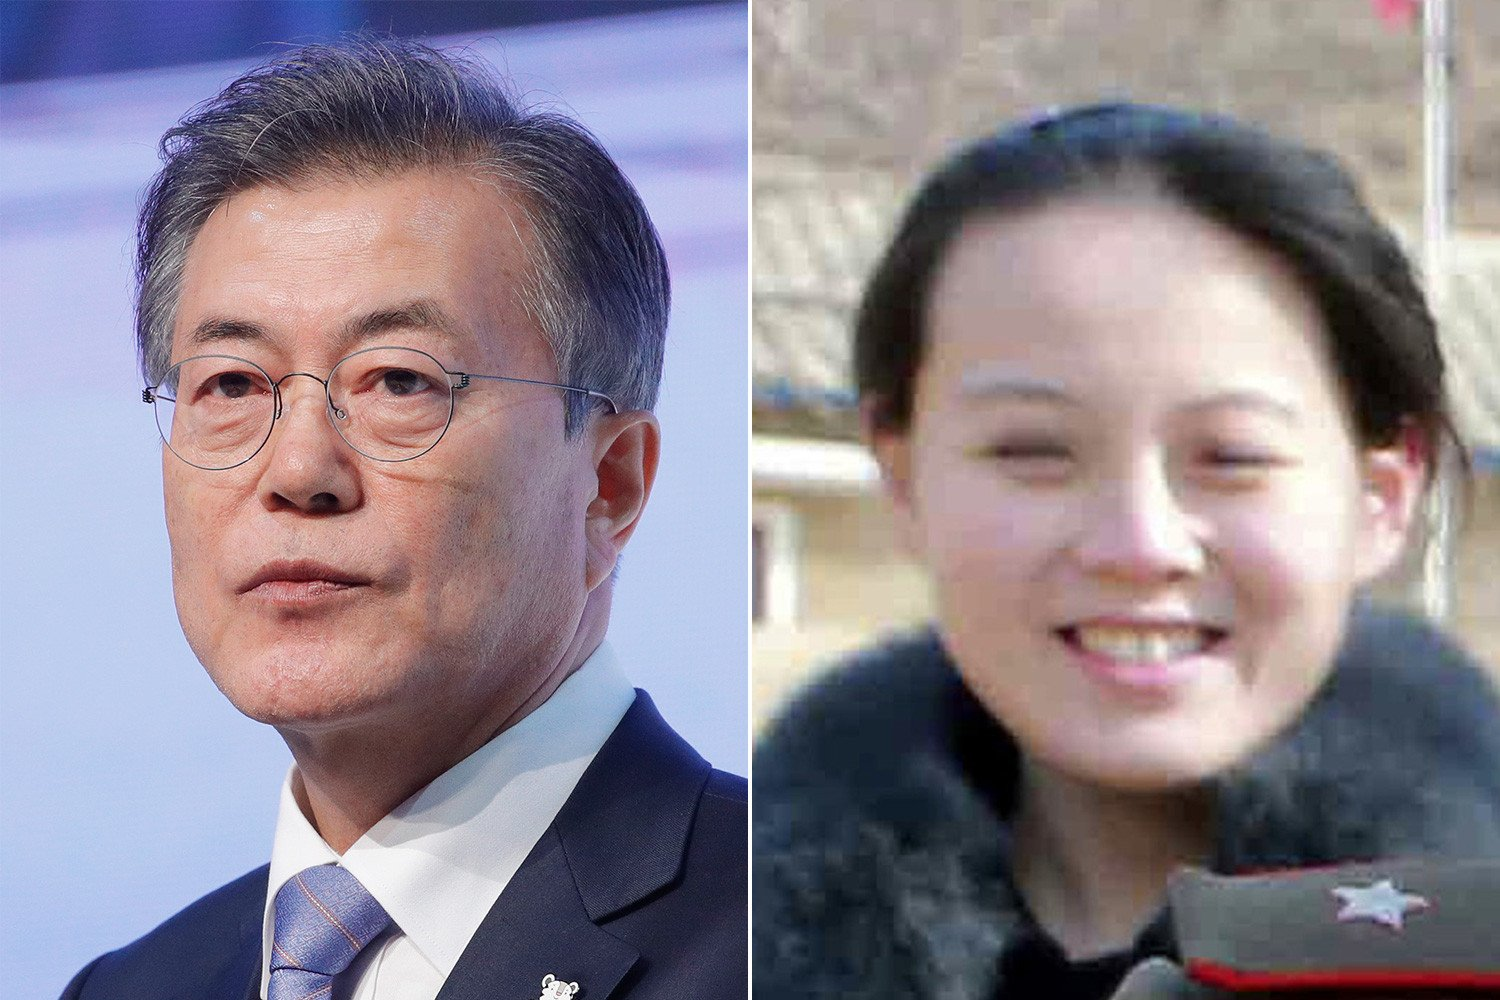 South Korean president to meet Kim Jong Un's sister during Olympics